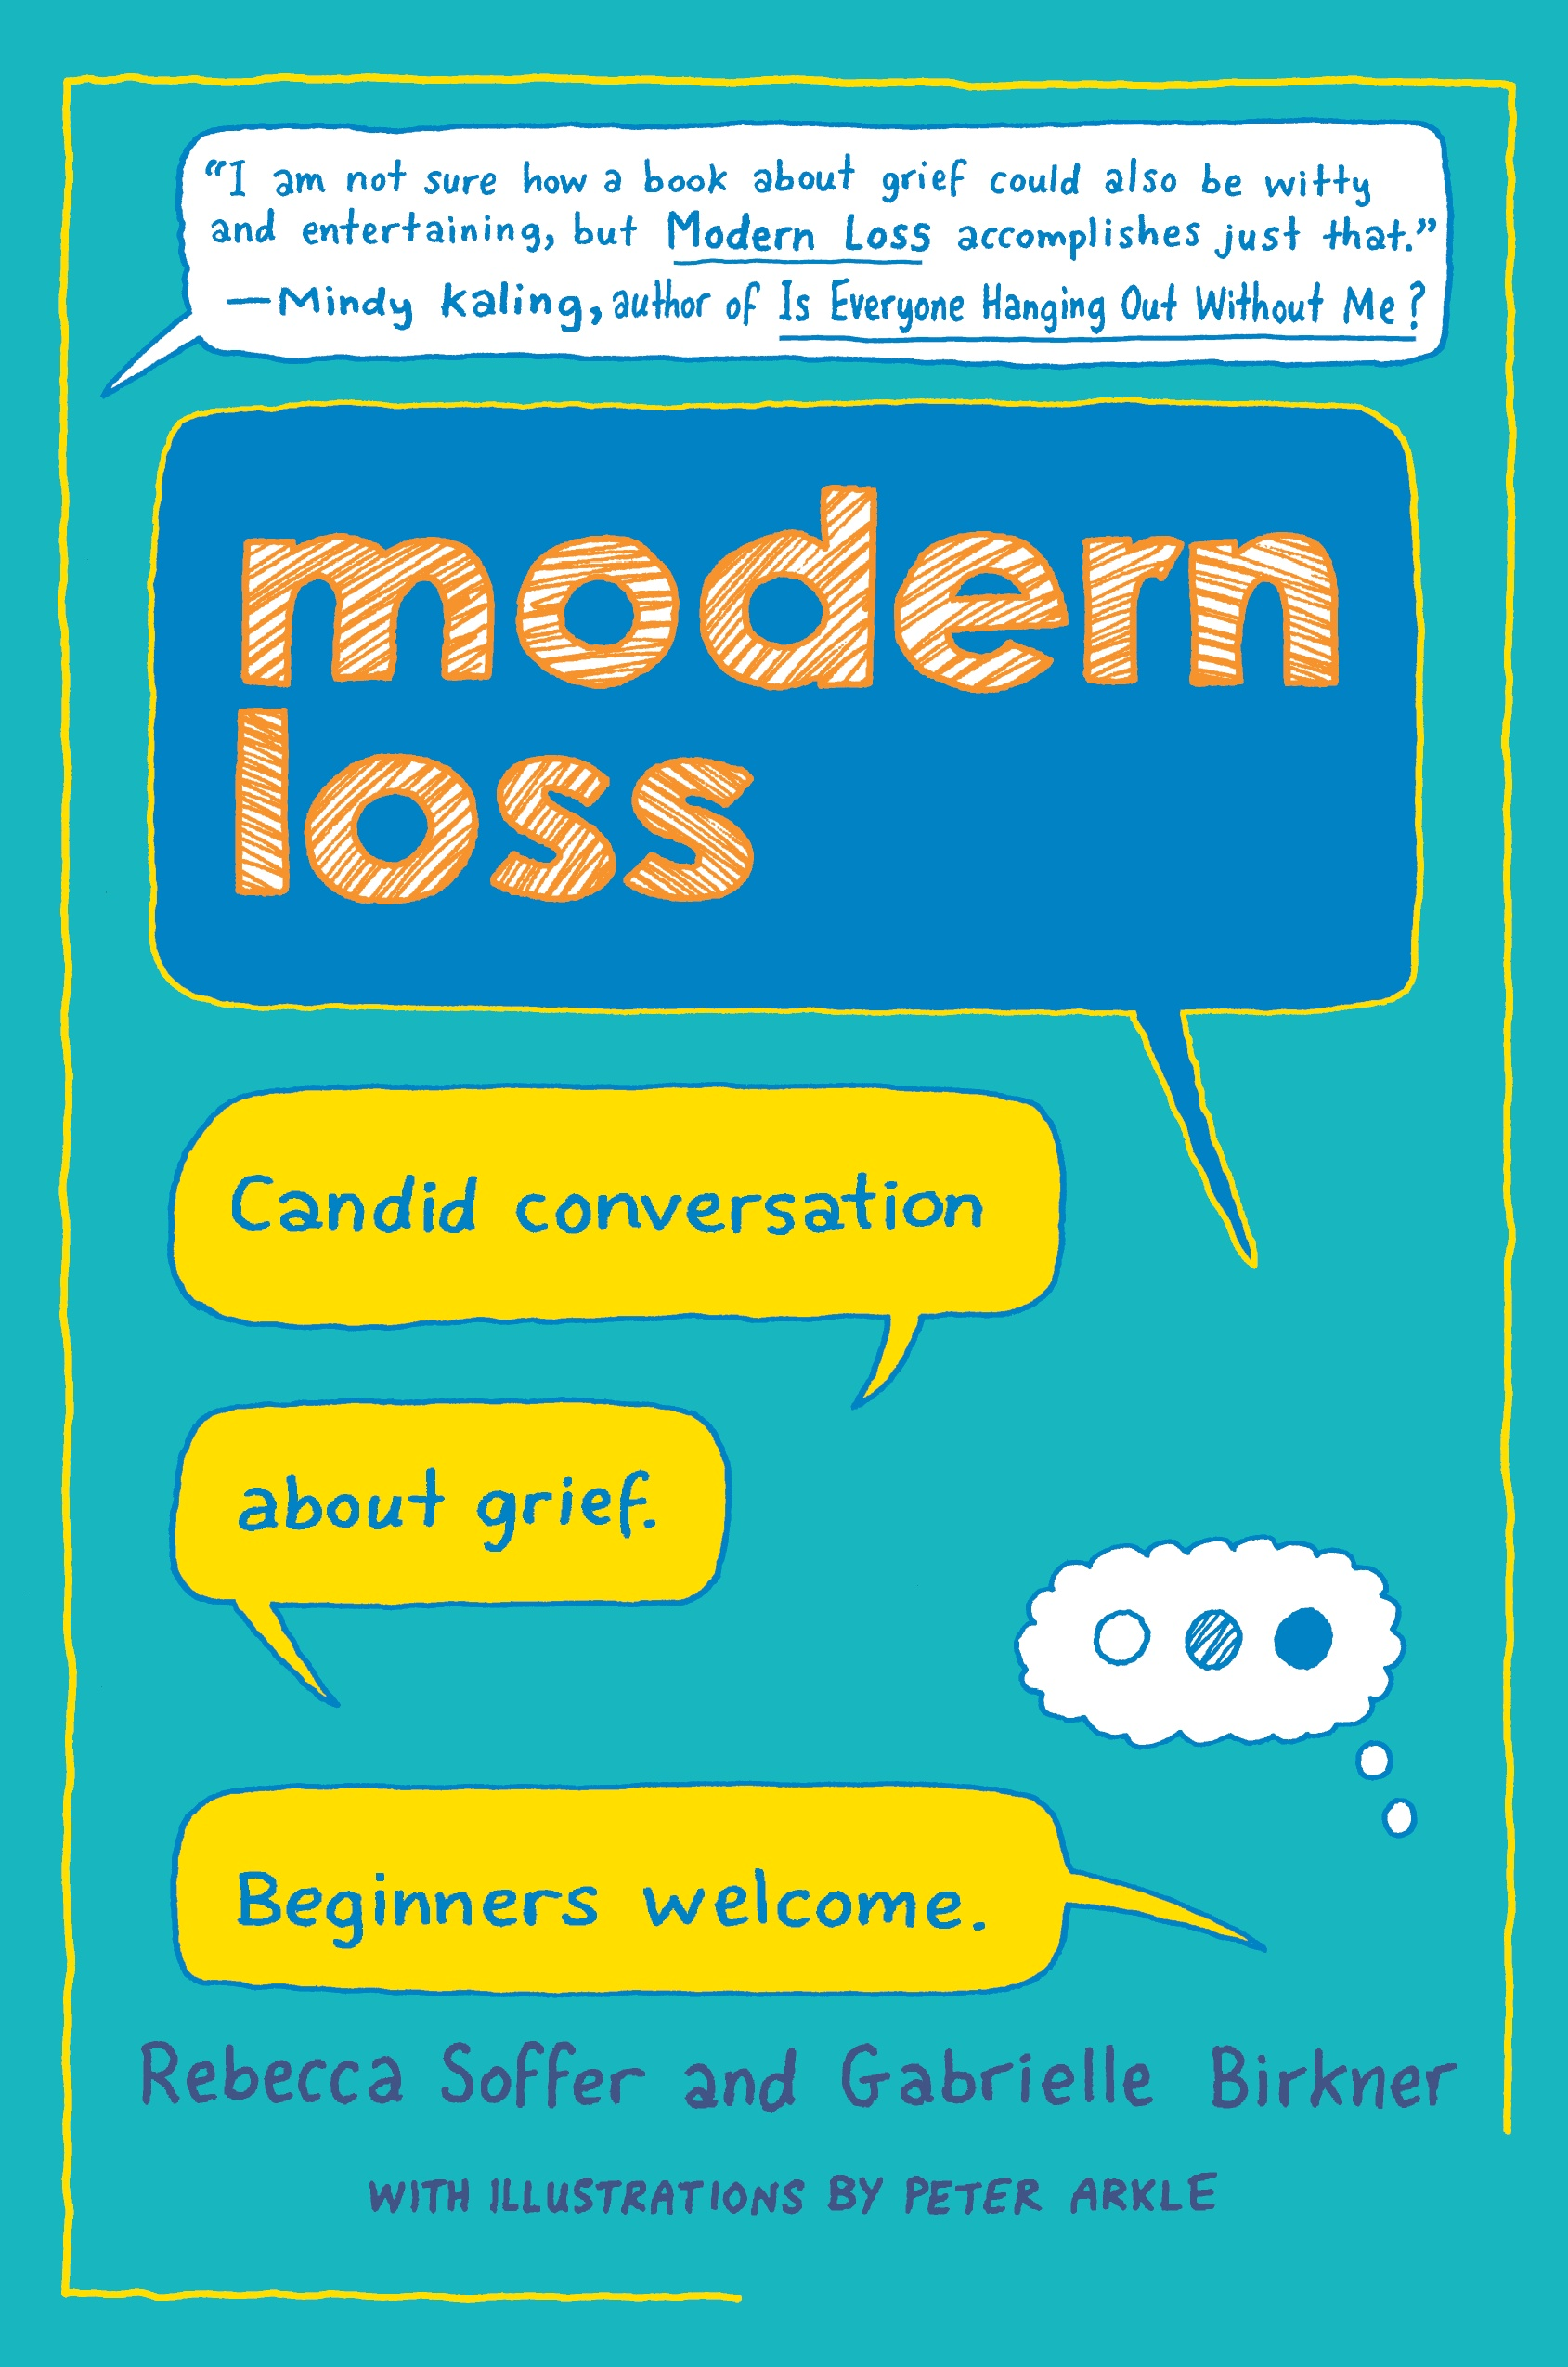 Book Launch: Modern Loss: Candid Conversation About Grief. Beginners Welcome. by Rebecca Soffer & Gabrielle Birkner